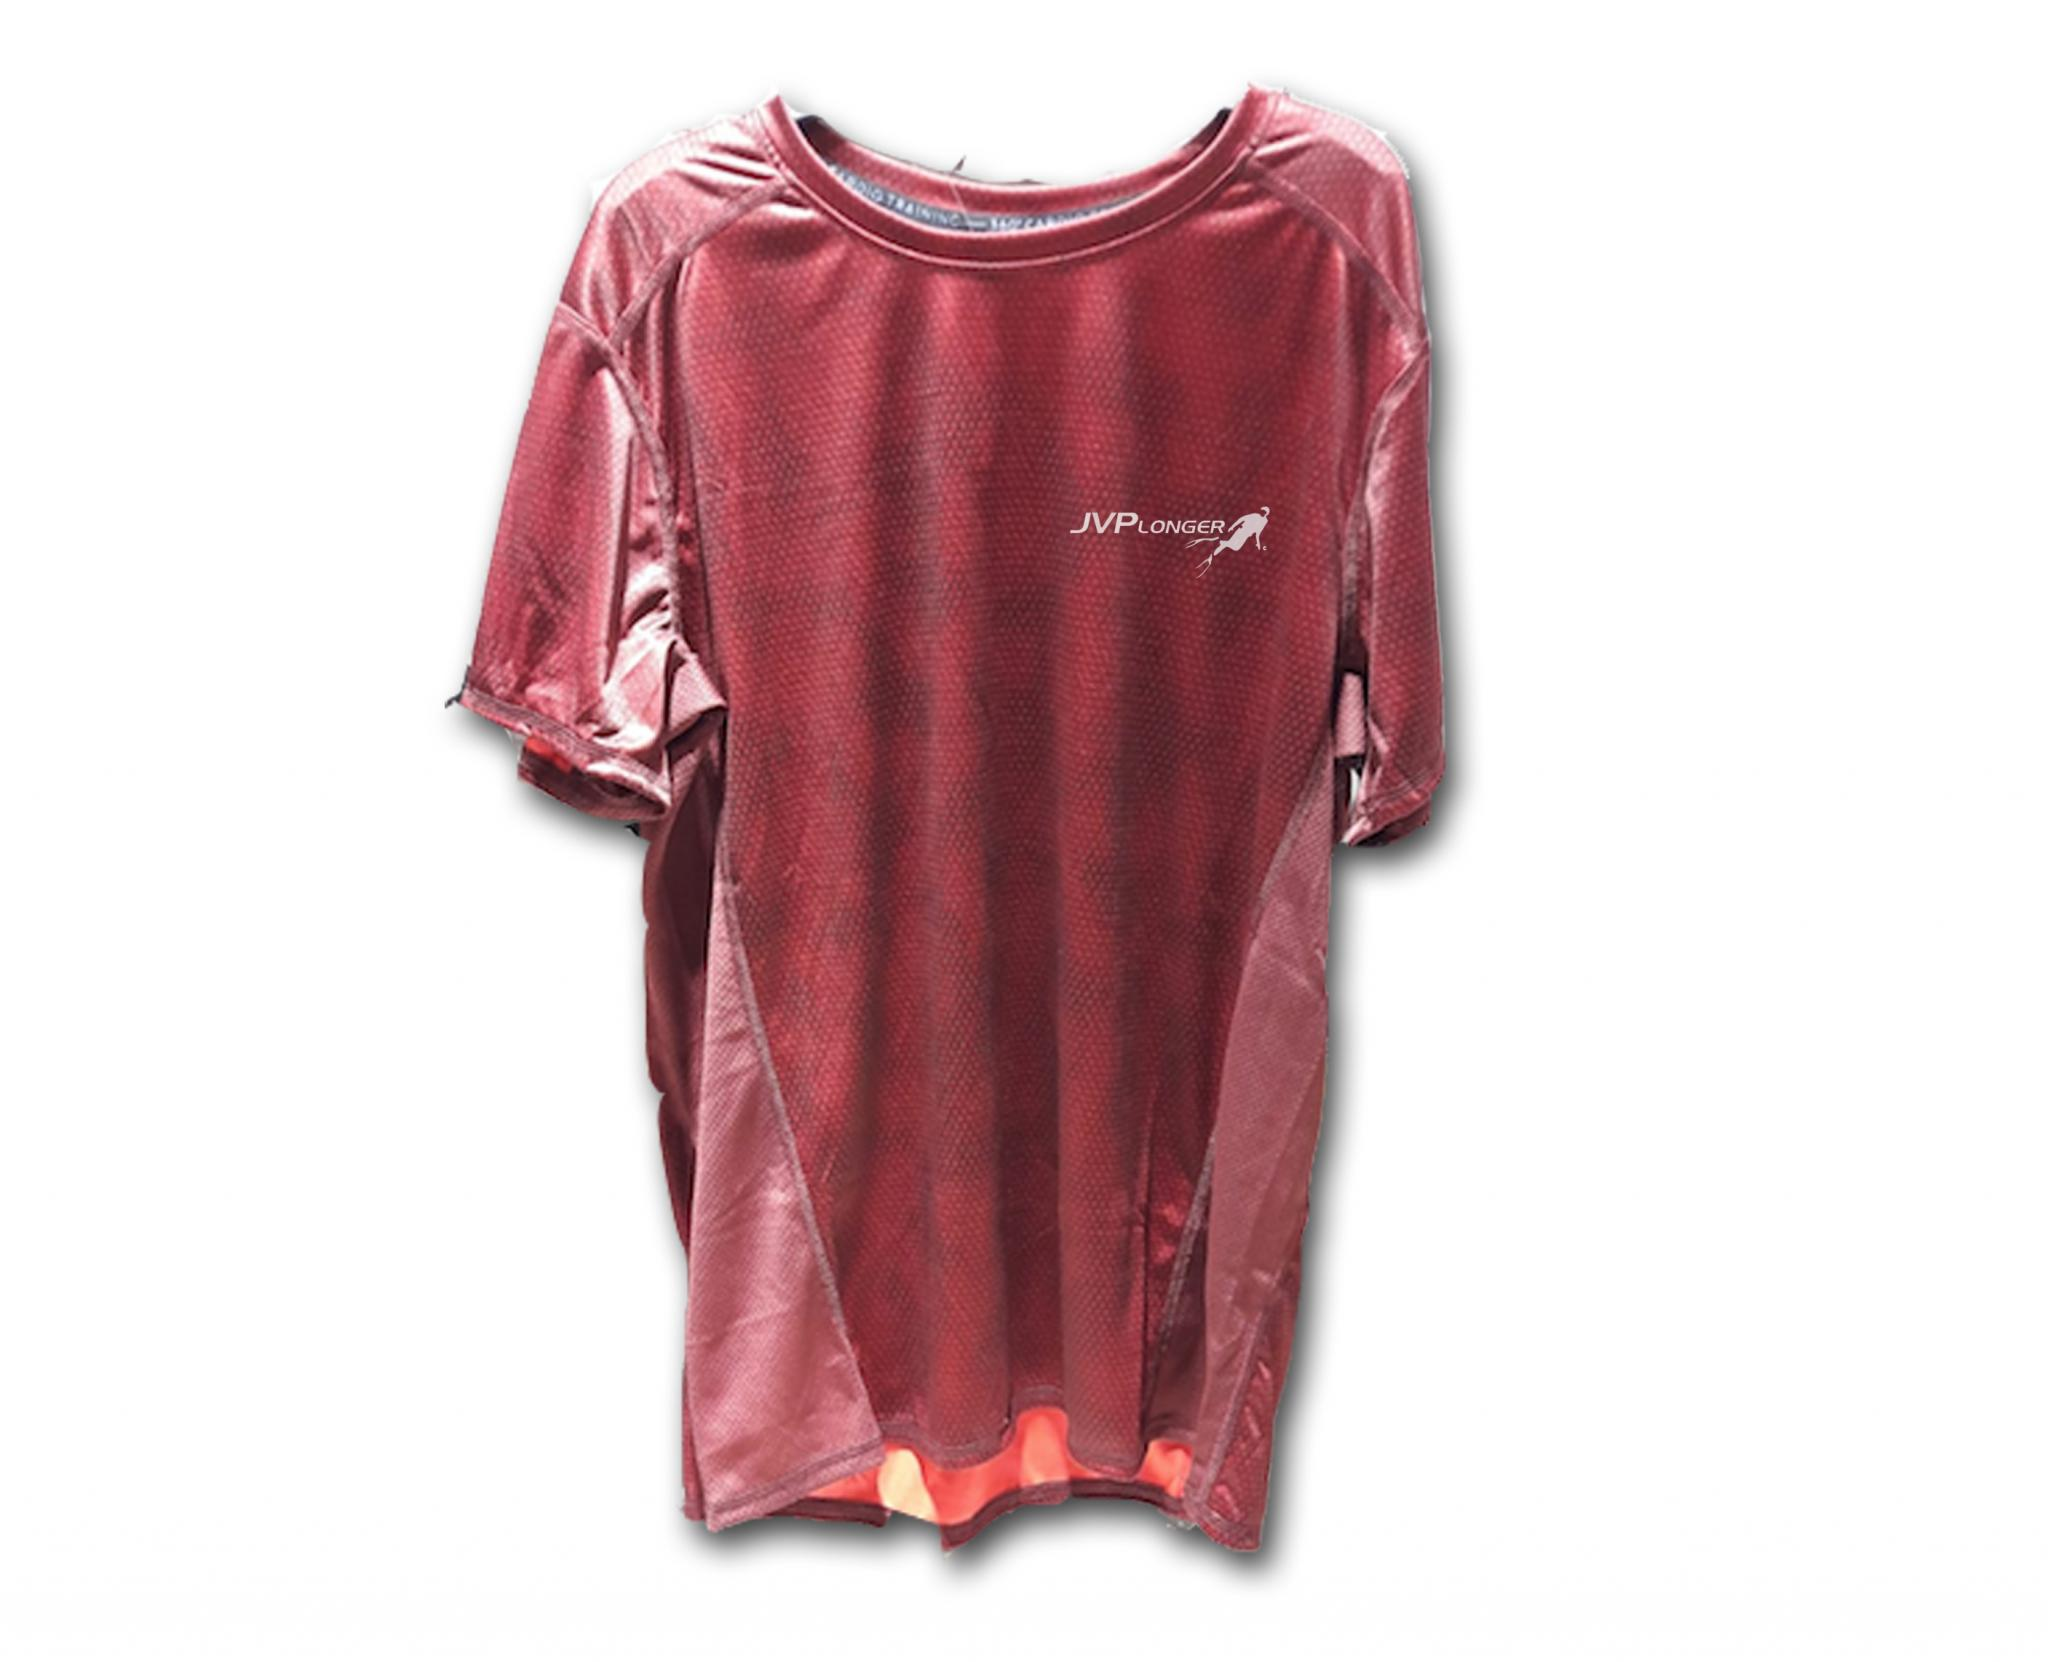 Tee-shirt Technique n°03 rouge